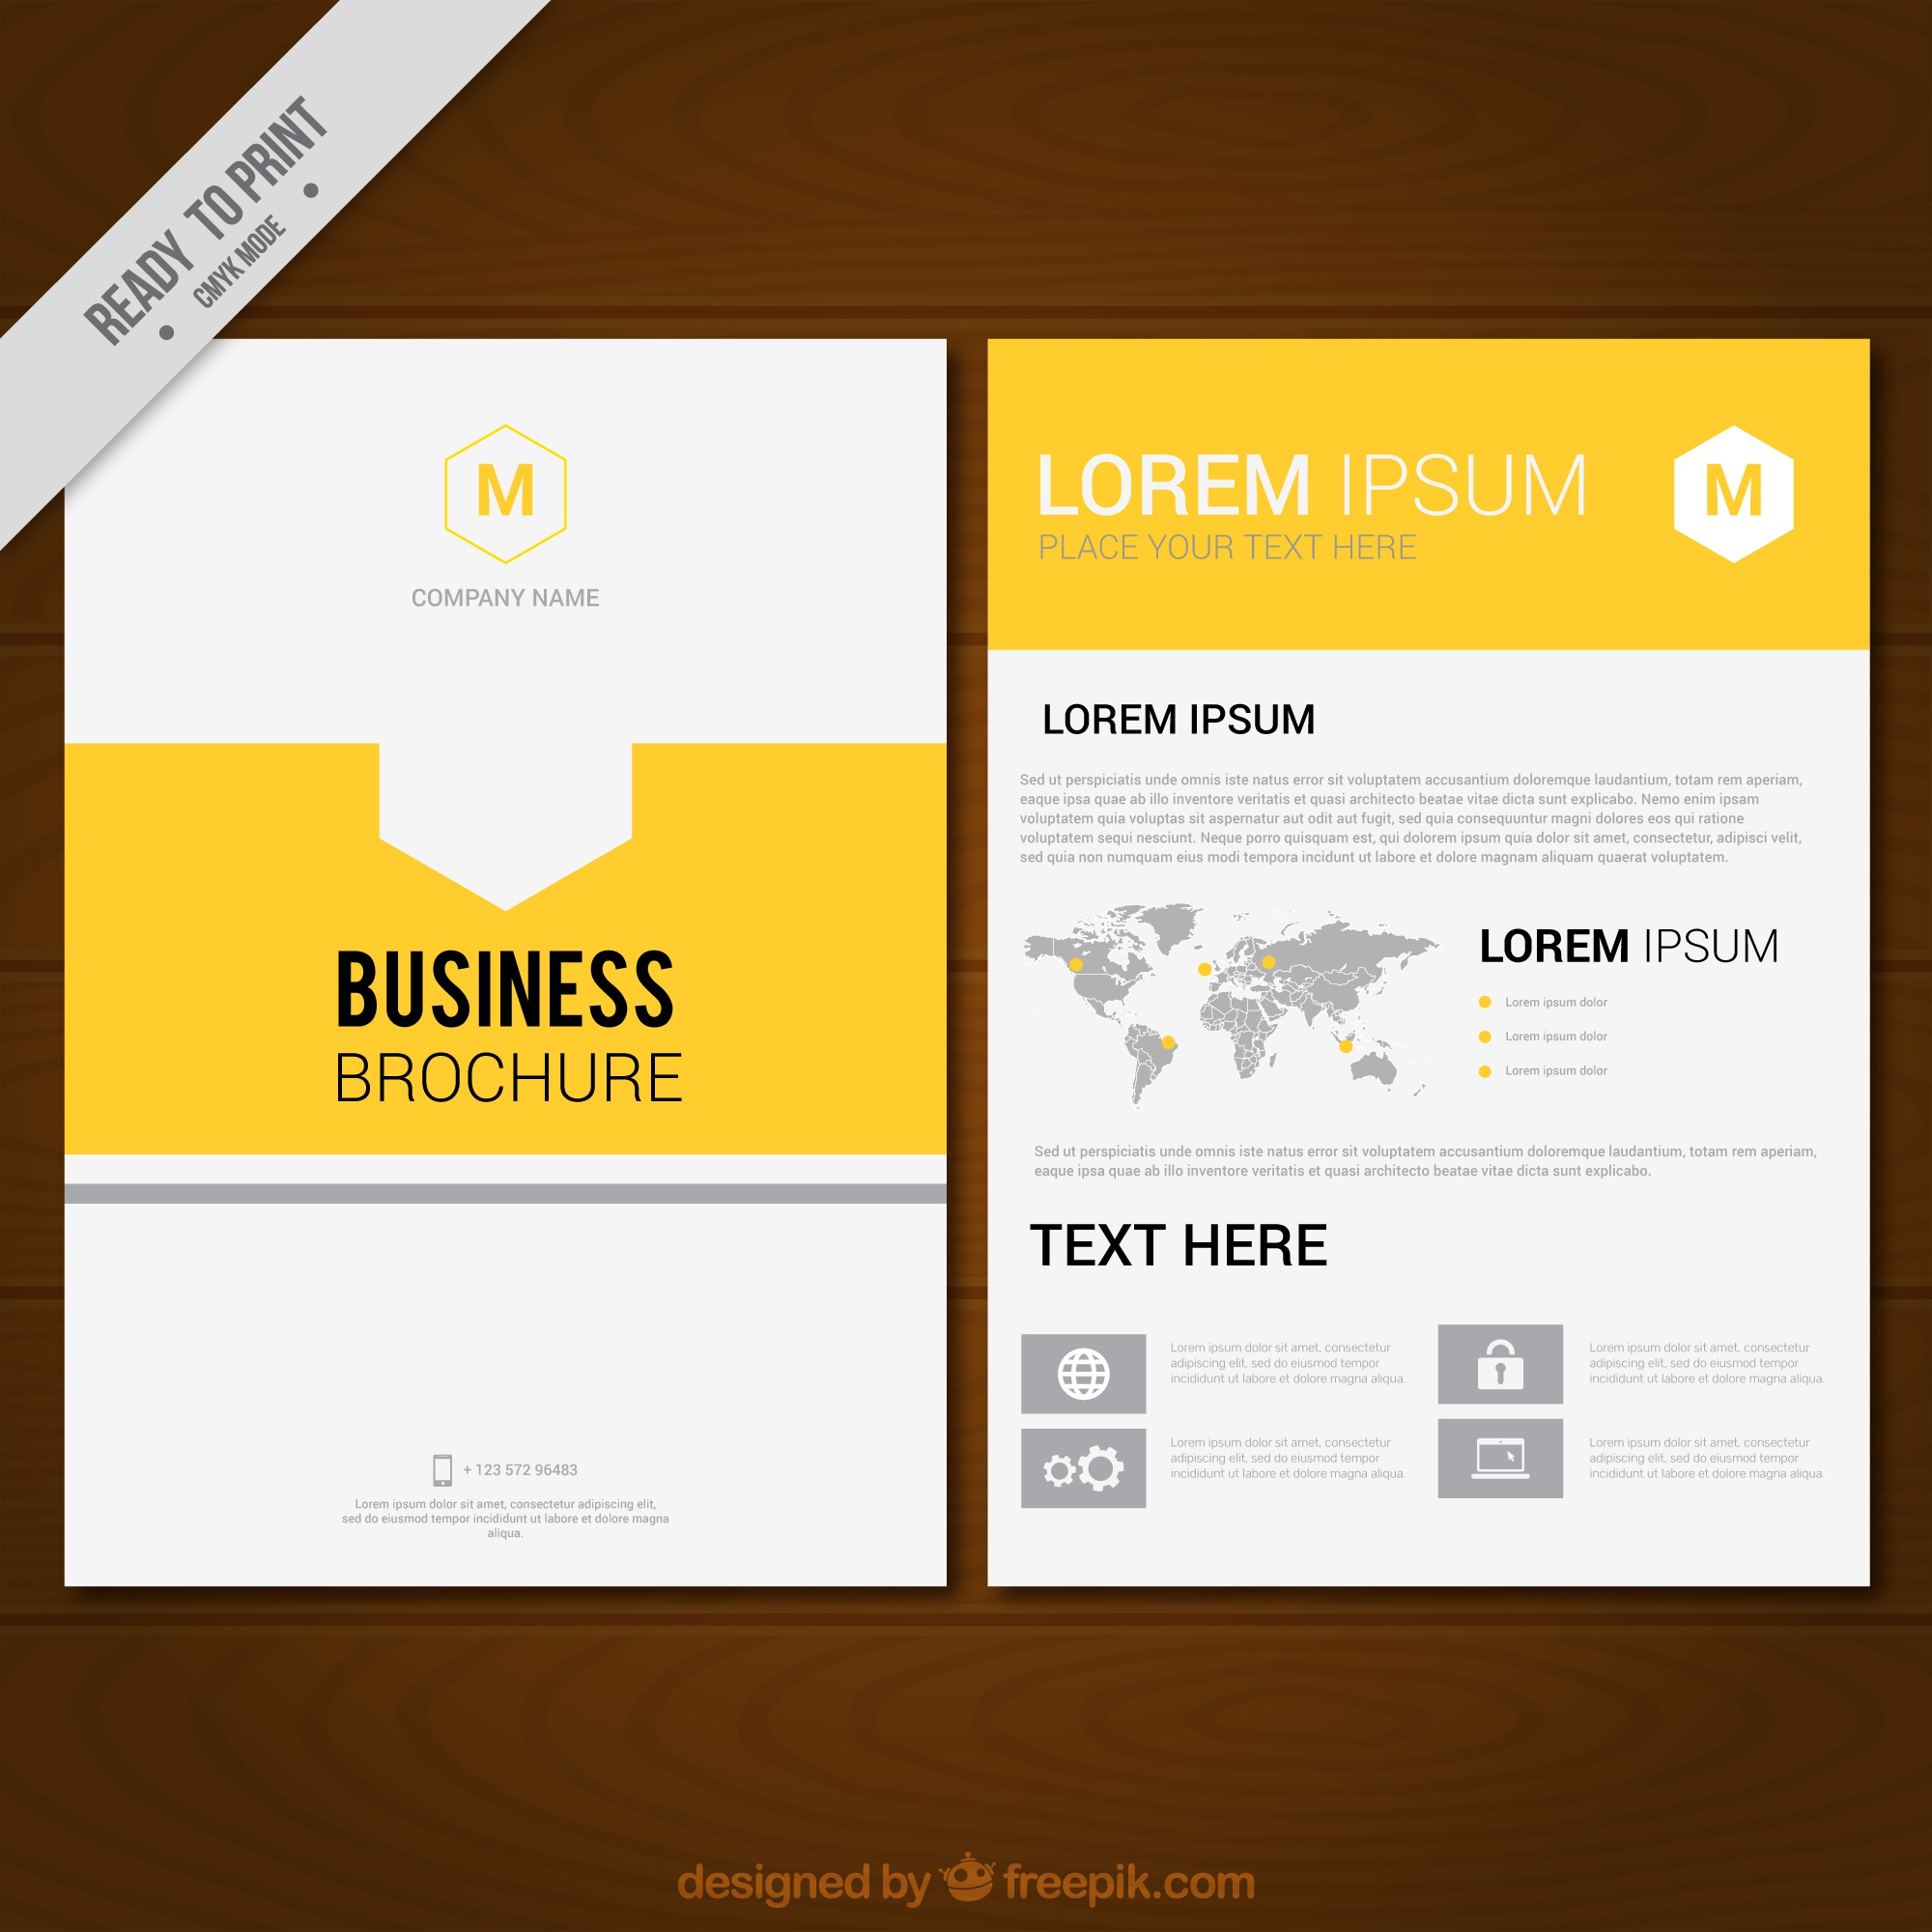 Business brochure template with yellow details